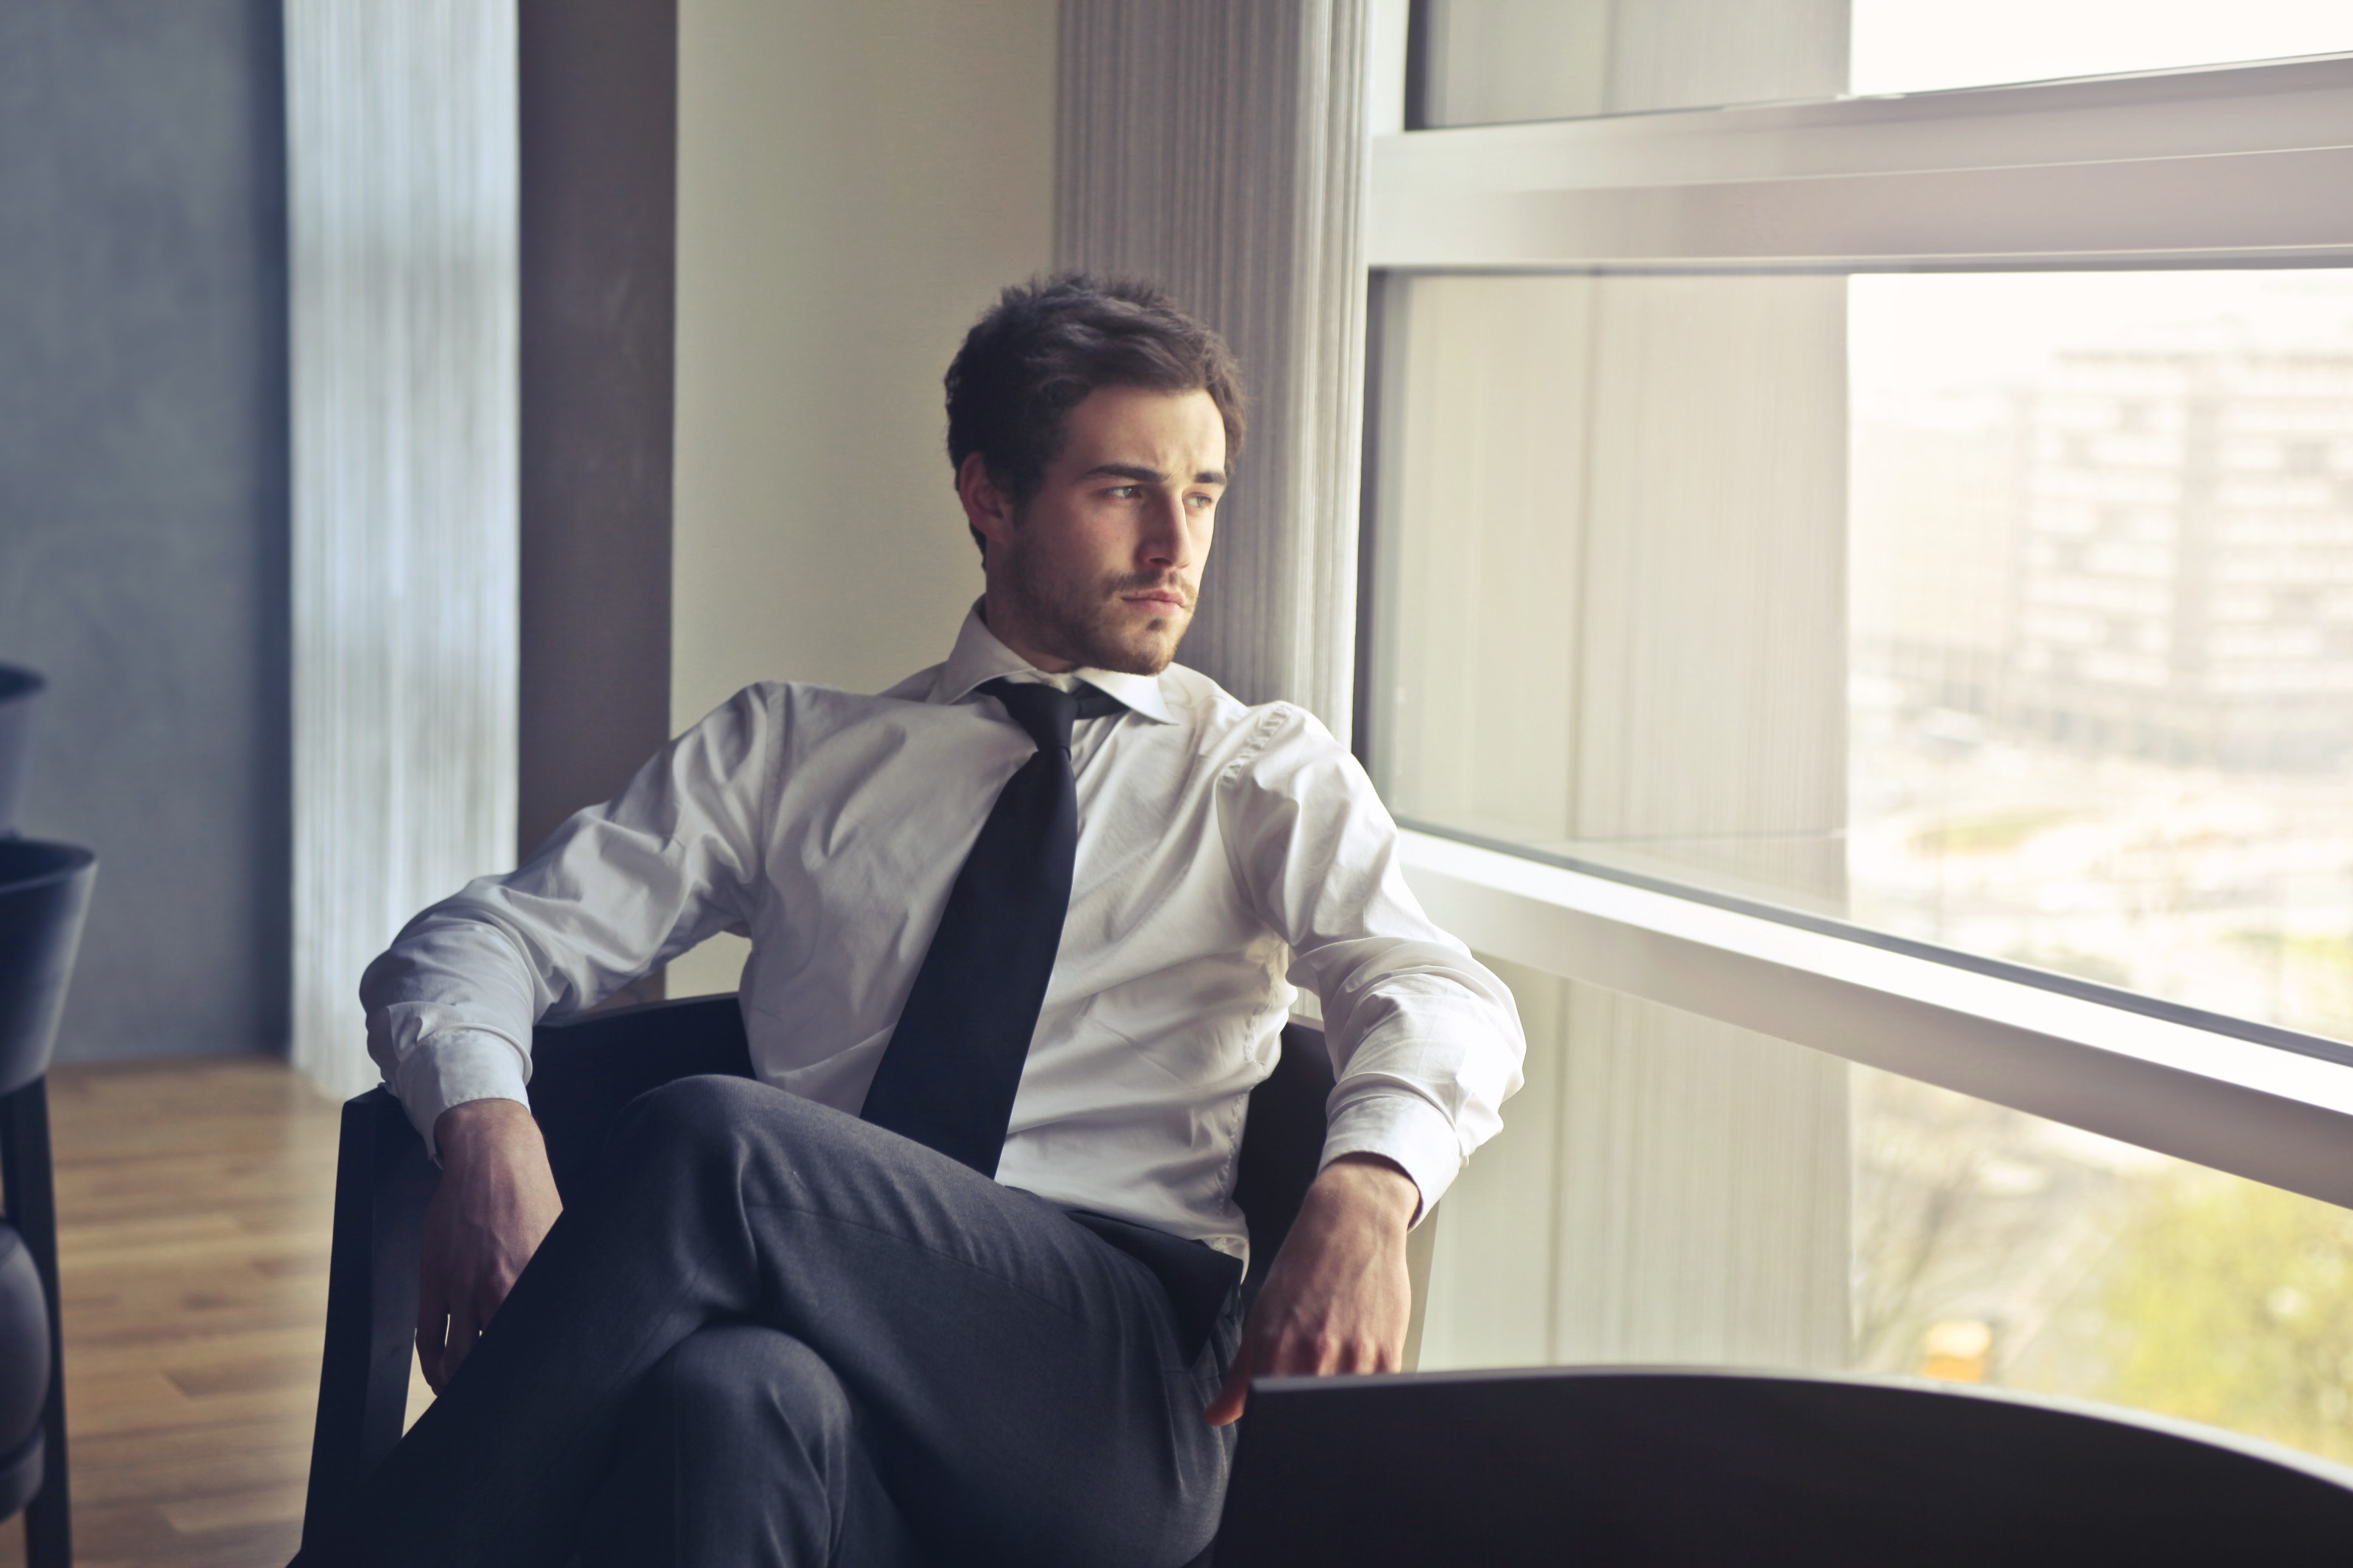 photo of man wearing white shirt and tie in office waiting area